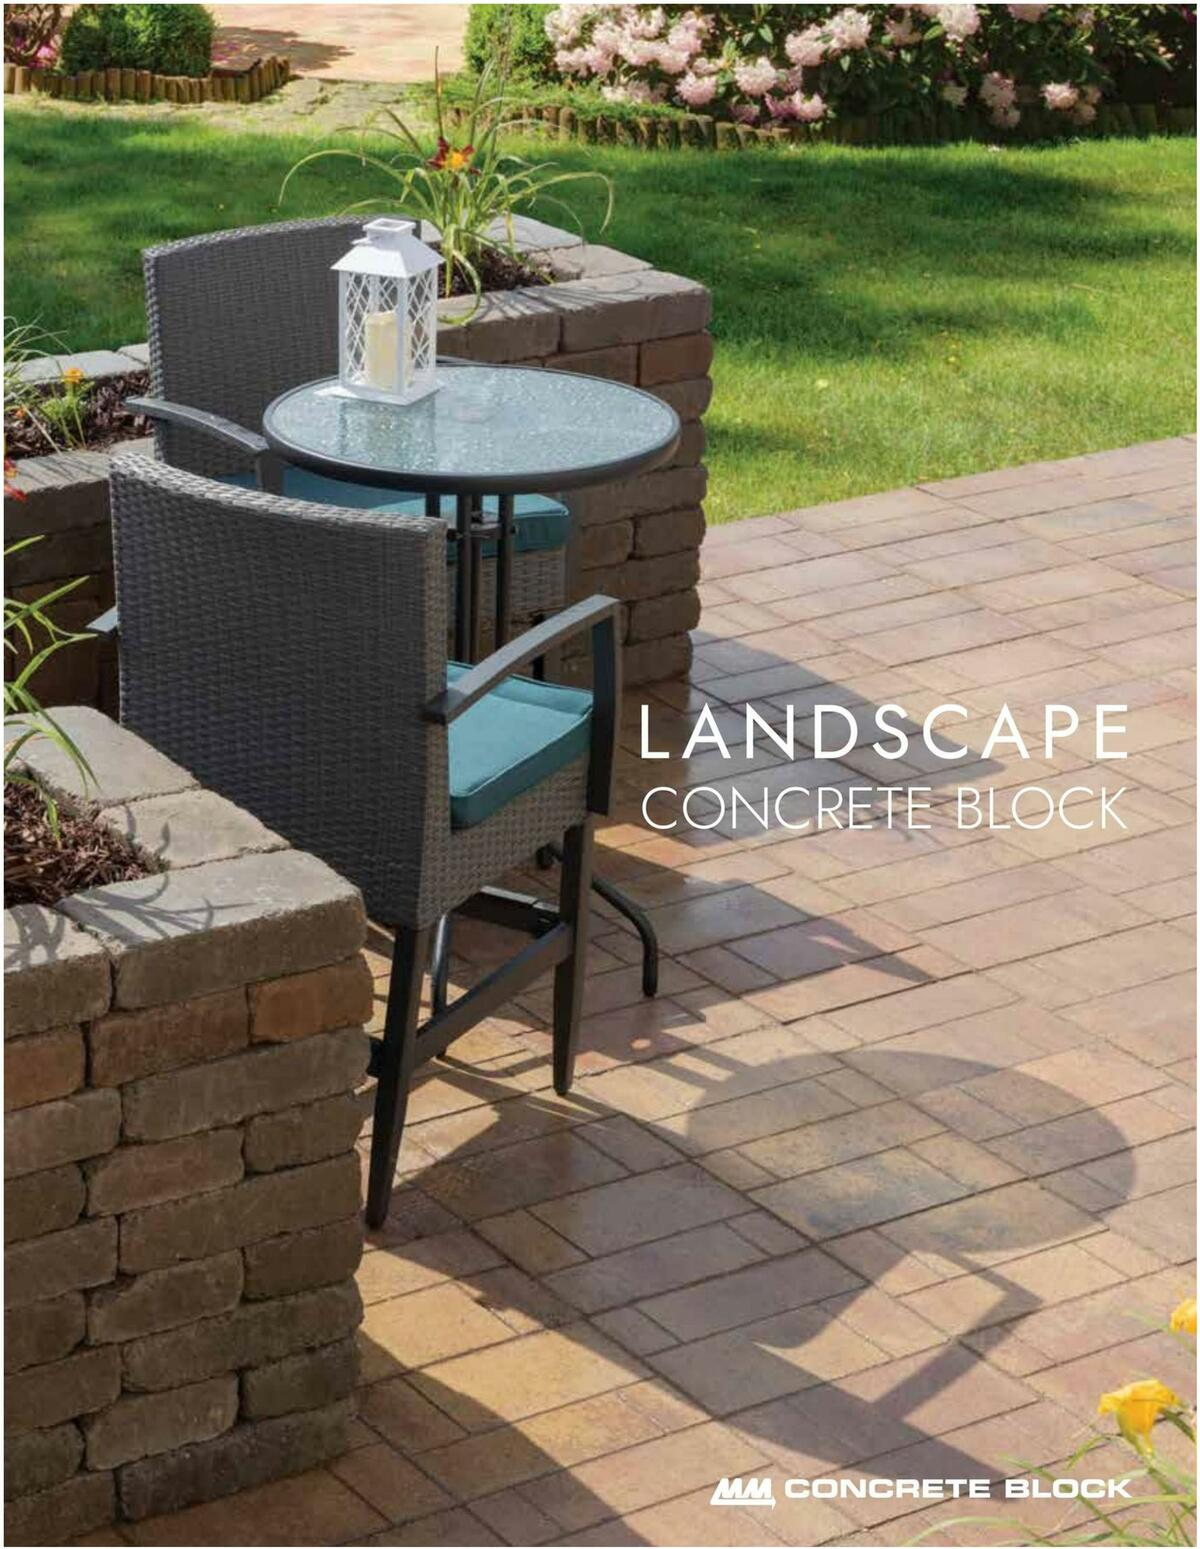 Menards Landscape Concrete Block Catalog Weekly Ad from March 15